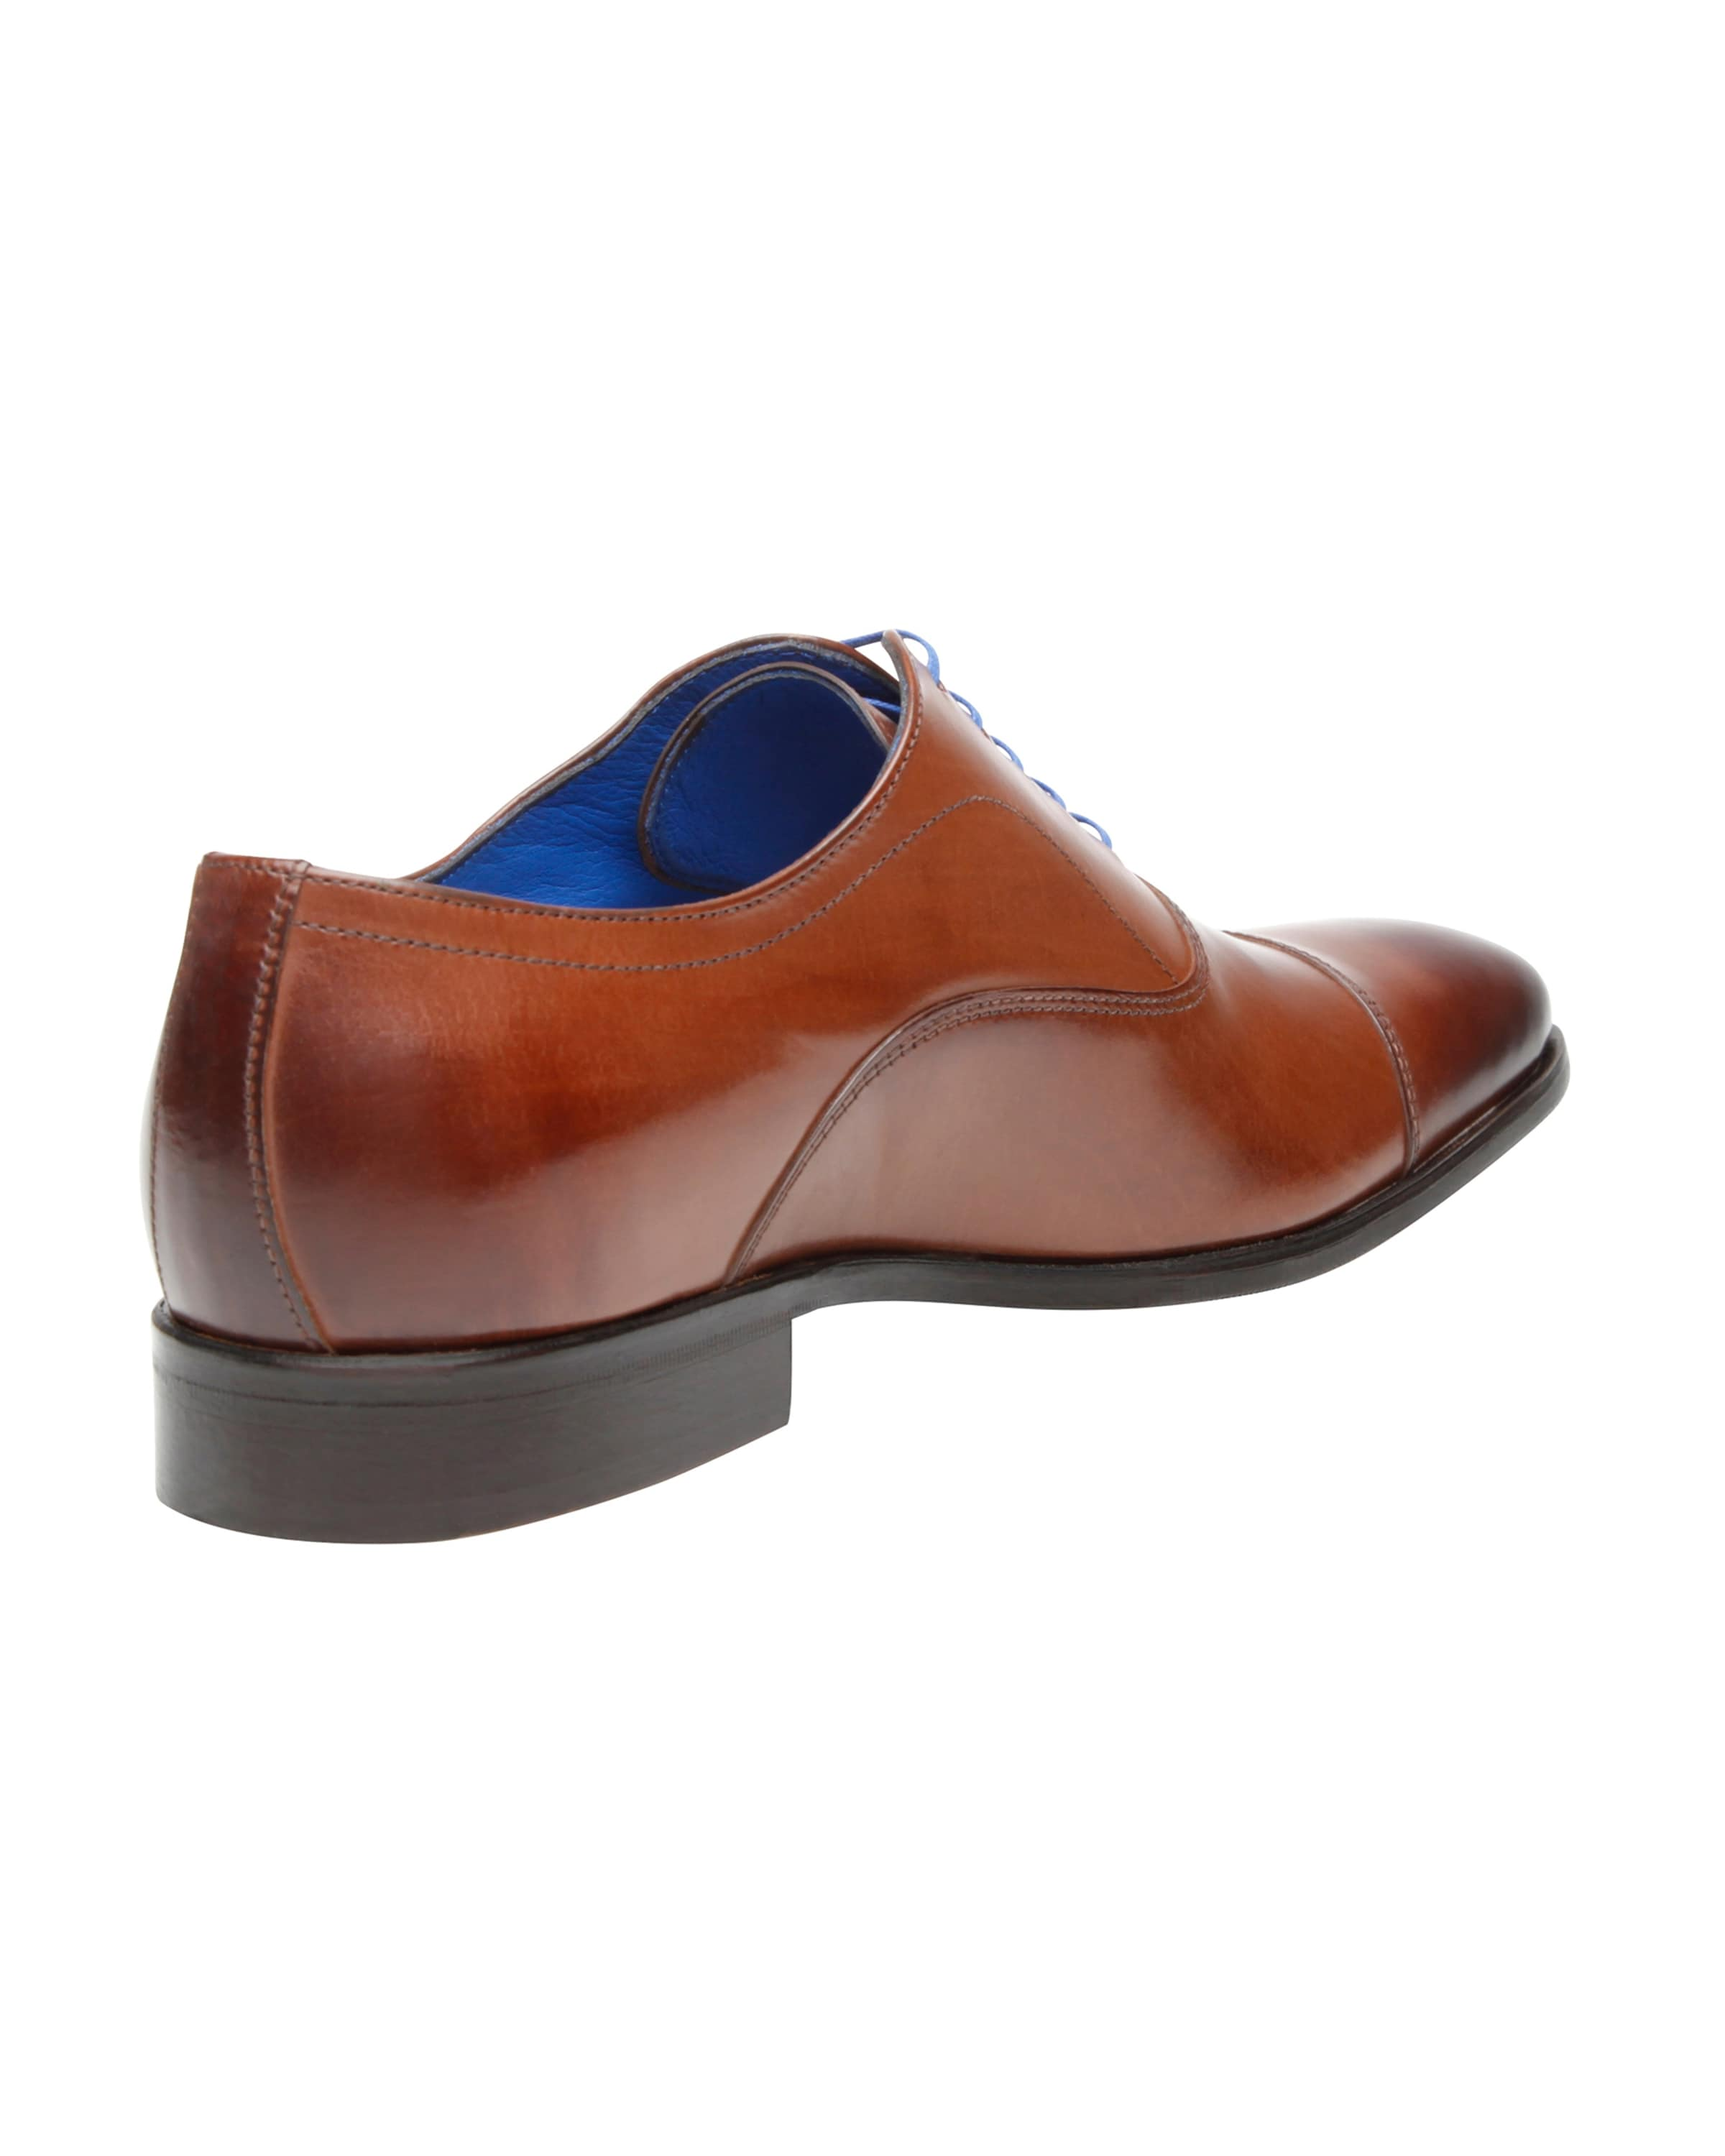 Bl' 'no5602 In Businessschuhe Shoepassion Cognac 4qcL5AjS3R